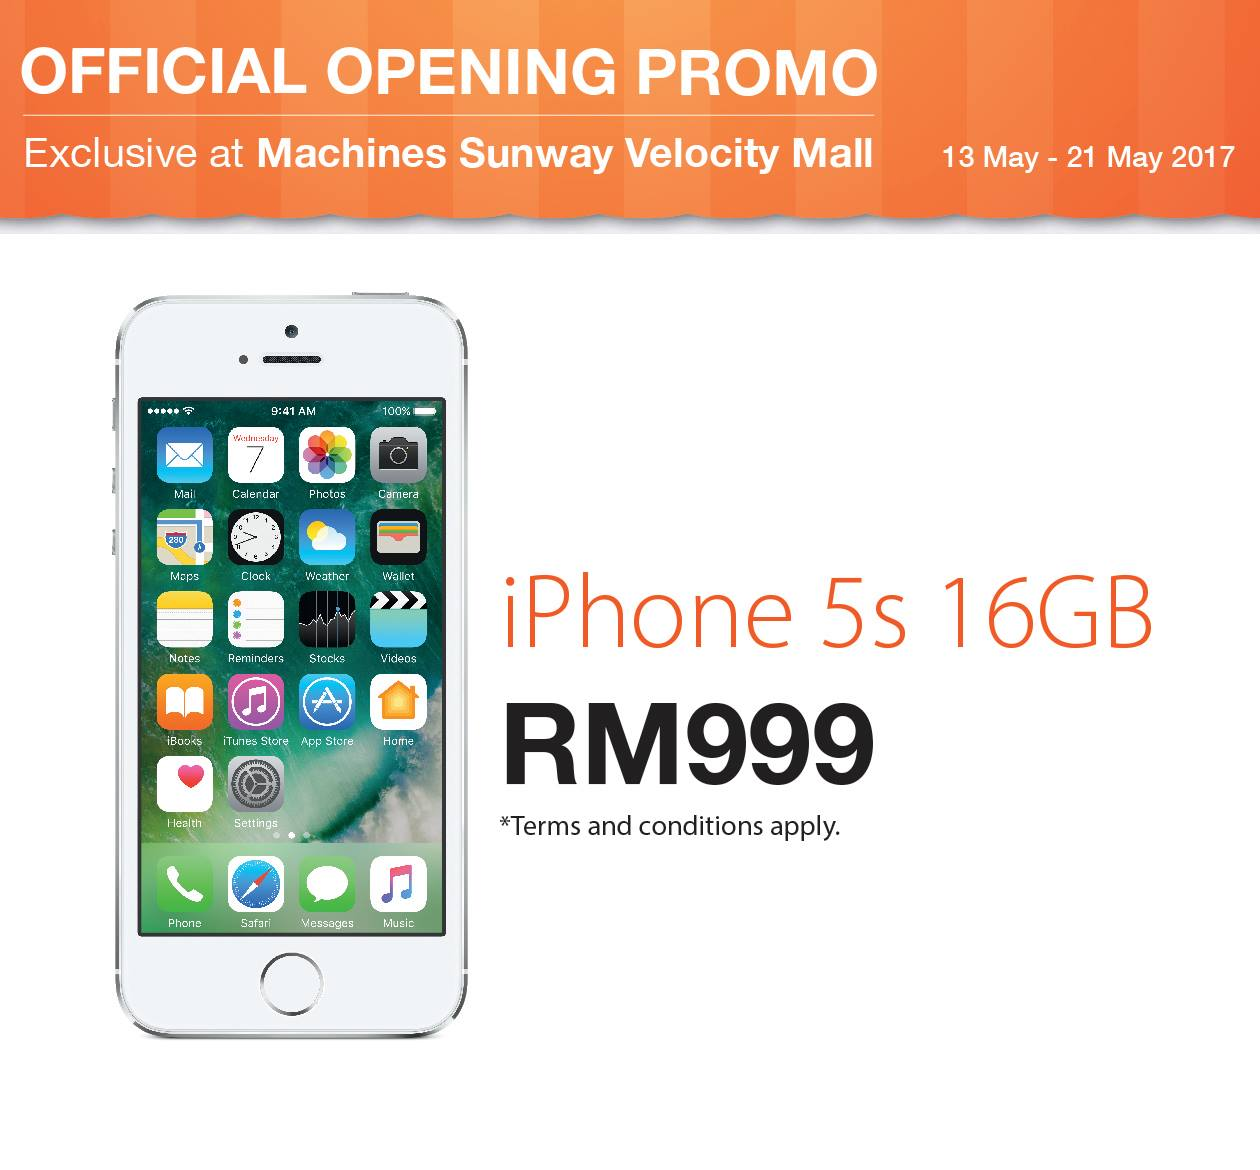 iphone 6 promo apple iphone 5s 16gb rm999 apple accessories 11392